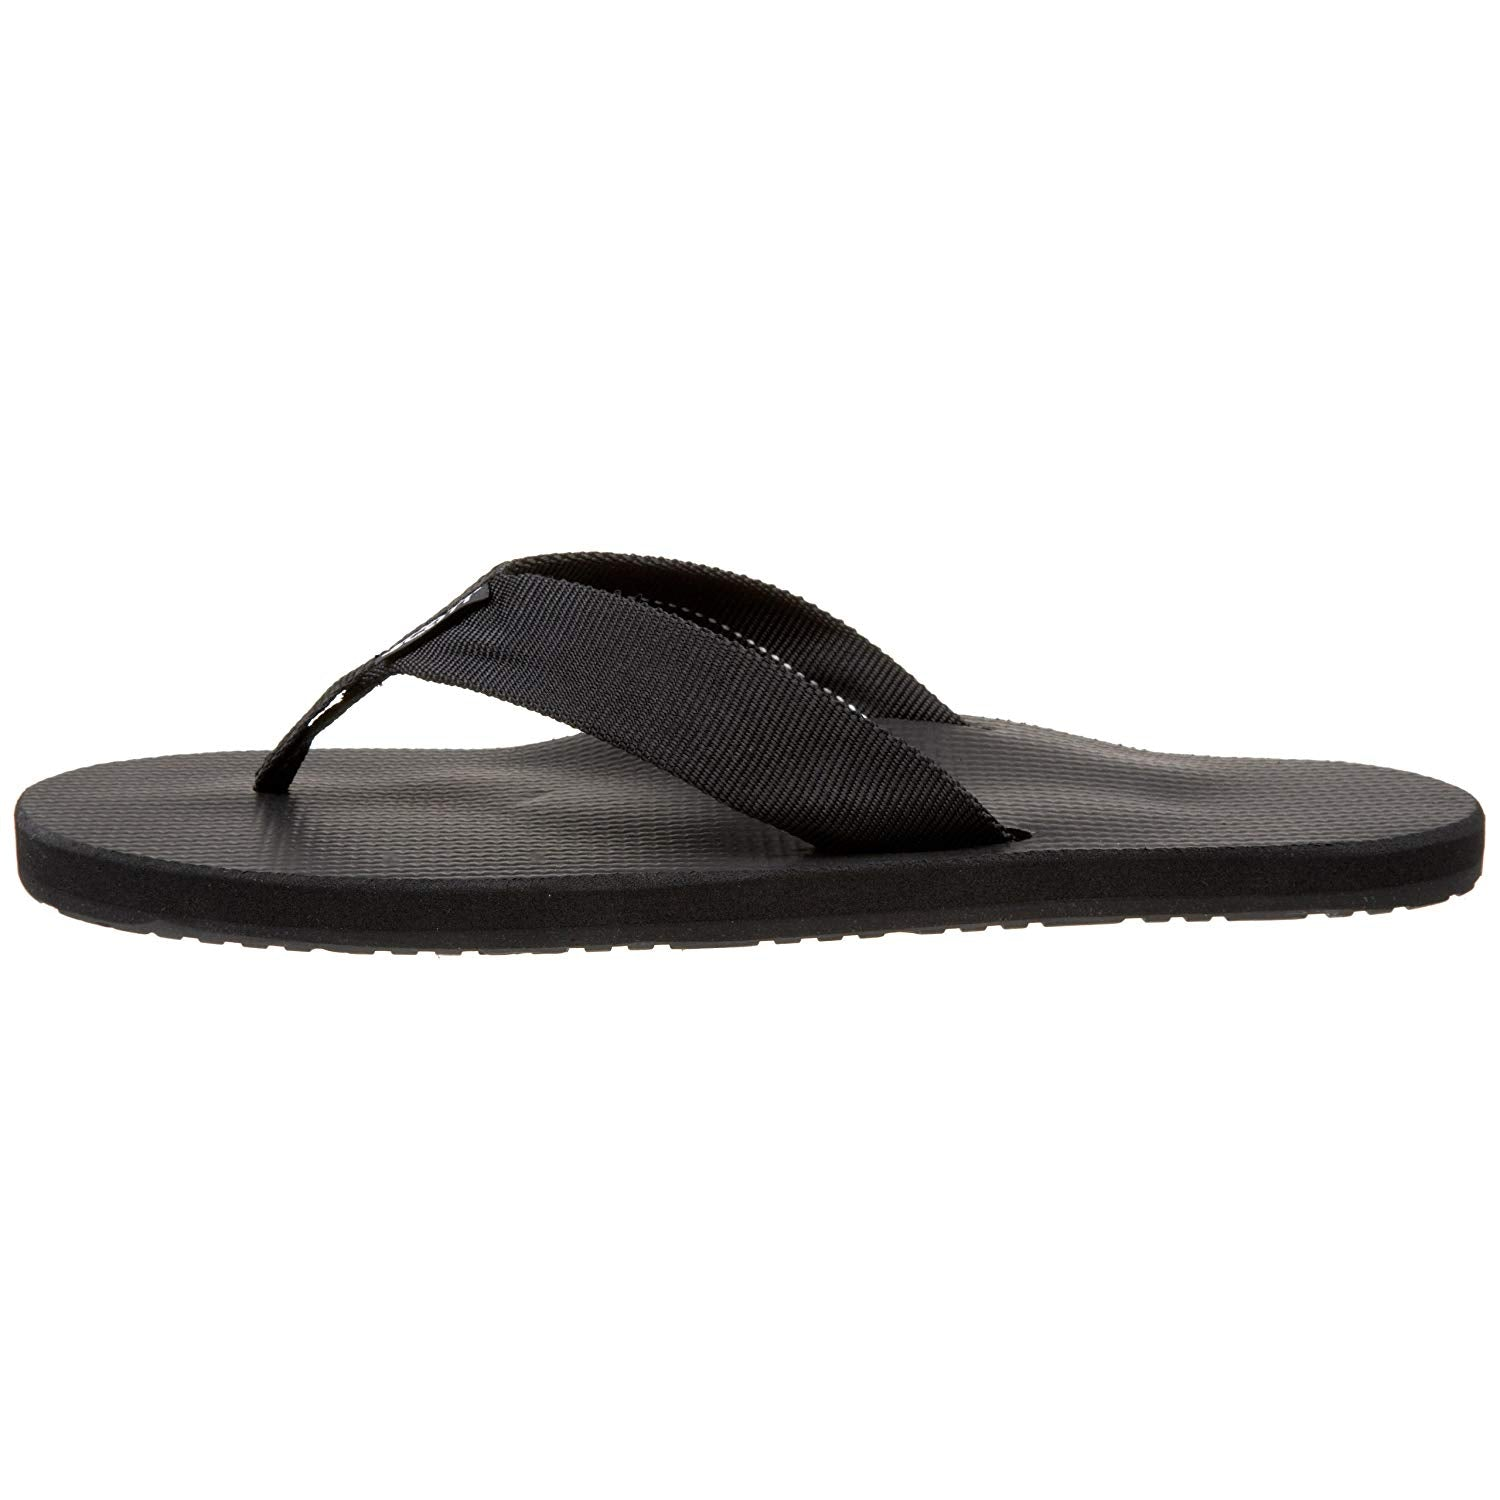 Scott Men's Haleiwa Sandals Black Flexible Strap - AlohaShoes.com